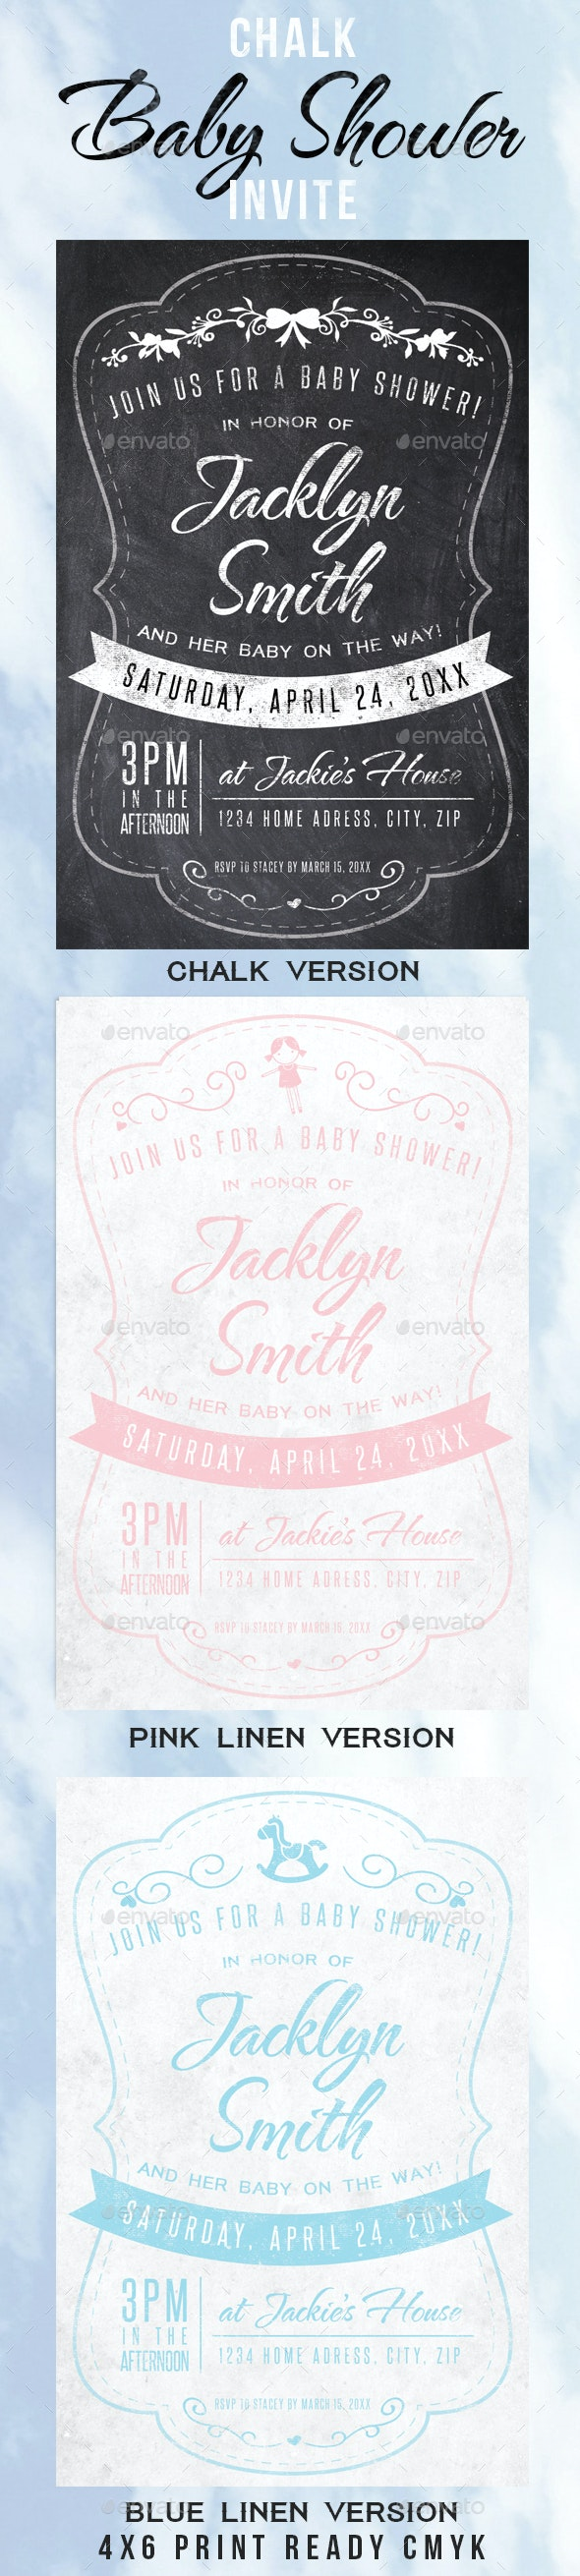 Chalk Baby Shower Invite - Invitations Cards & Invites